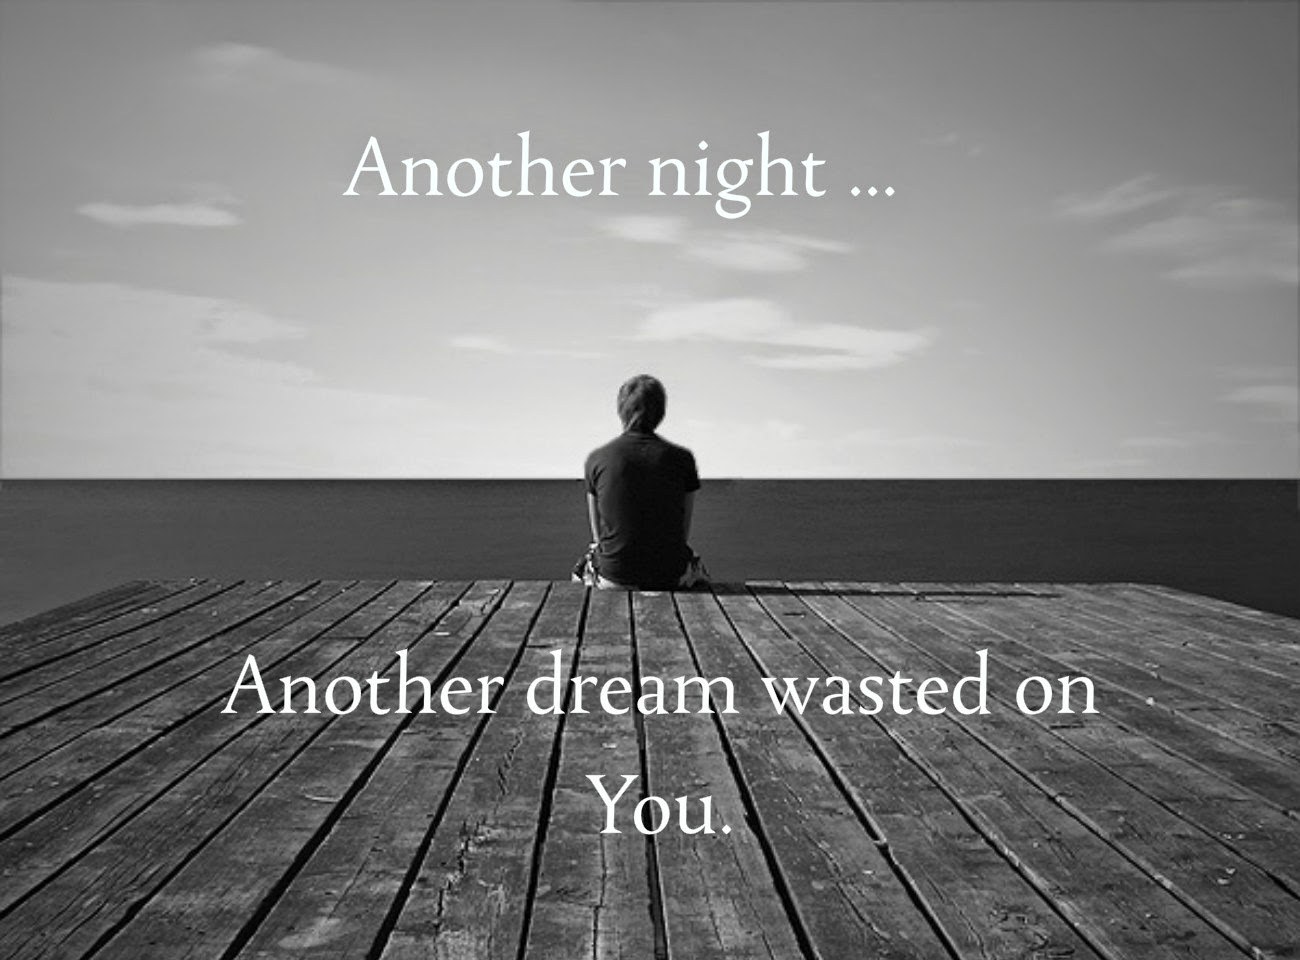 Another night another dream wasted on you.